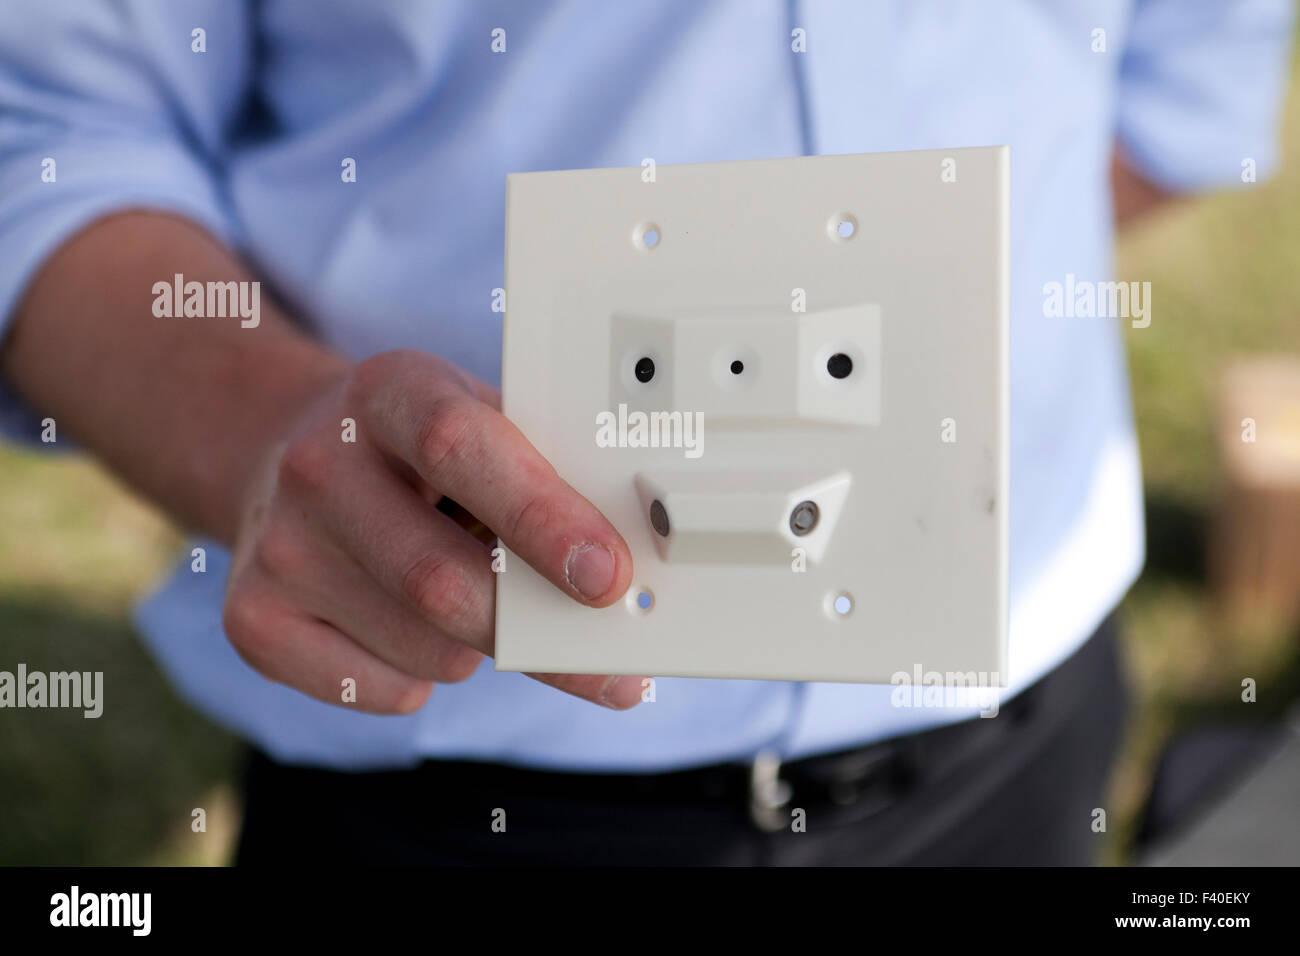 Man holding hidden camera with built in motion detector - USA - Stock Image